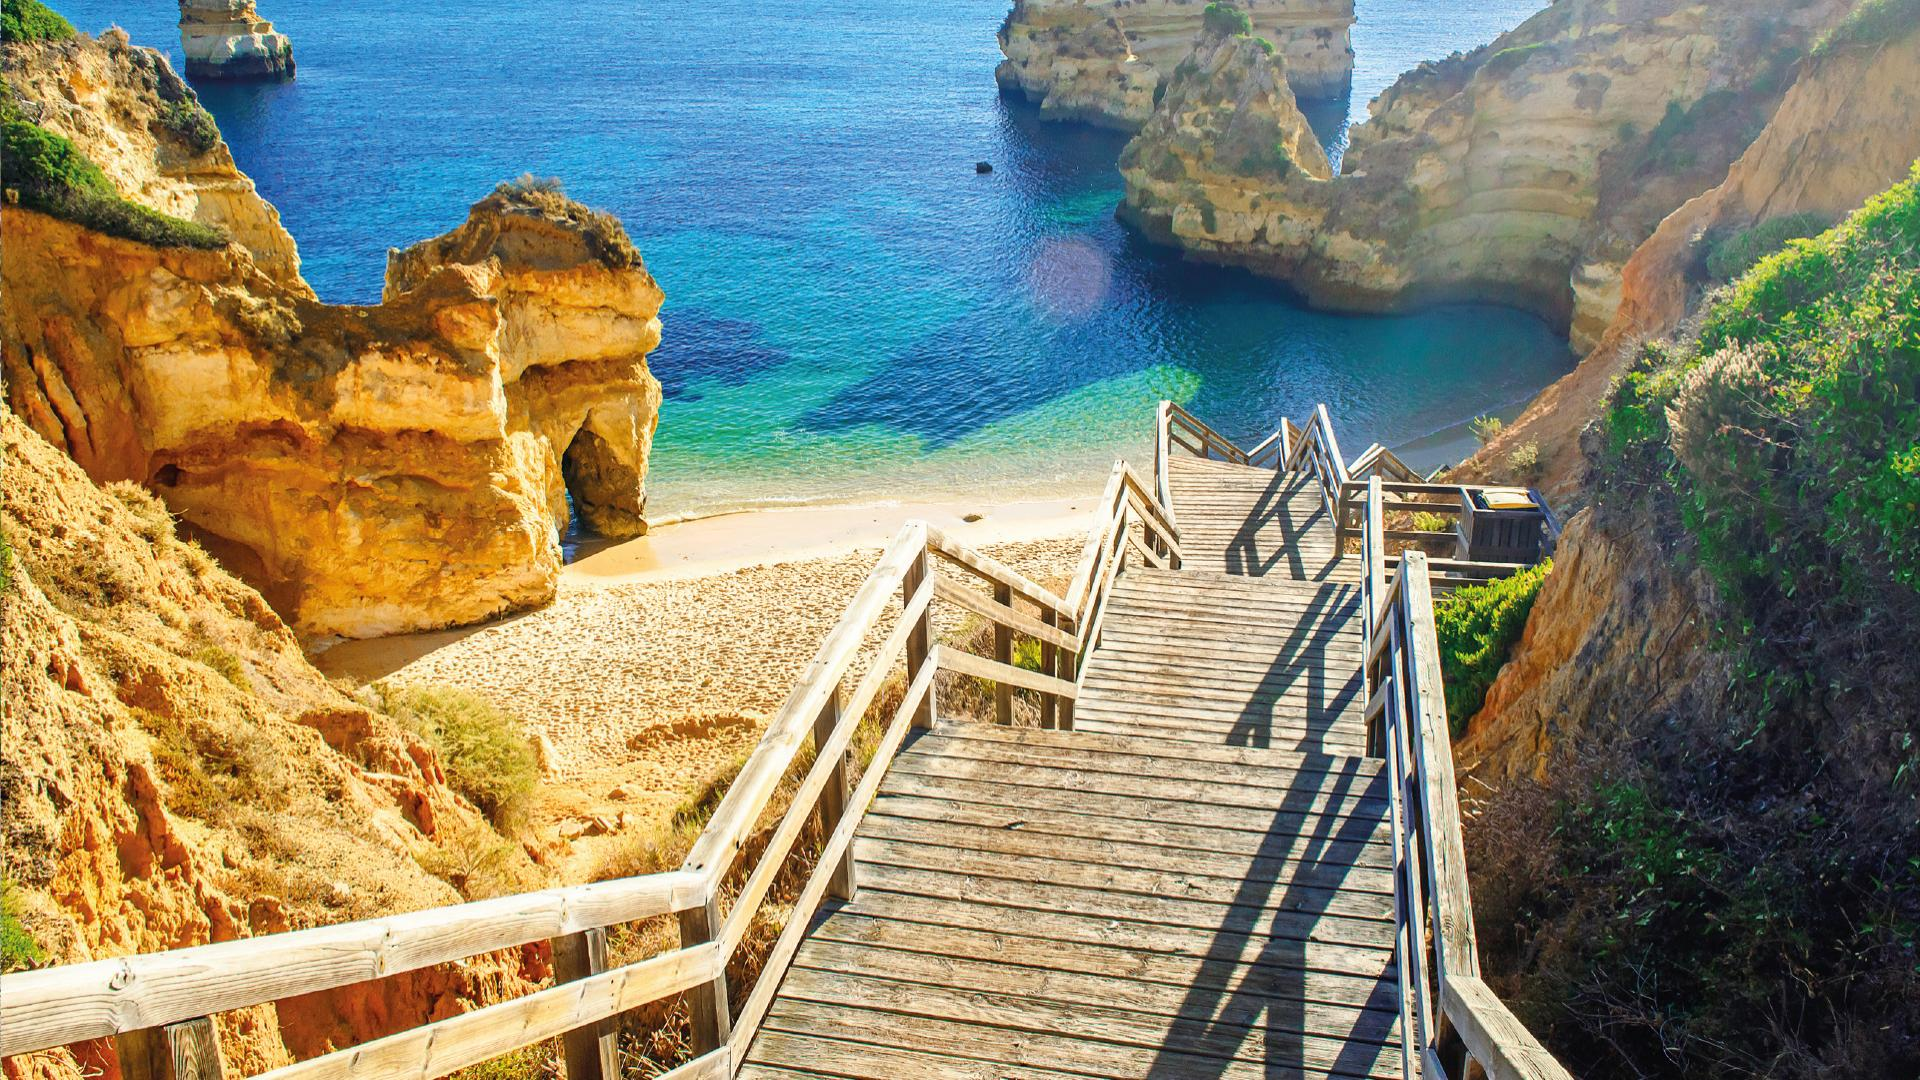 Top 10 most beautiful beaches in Algarve